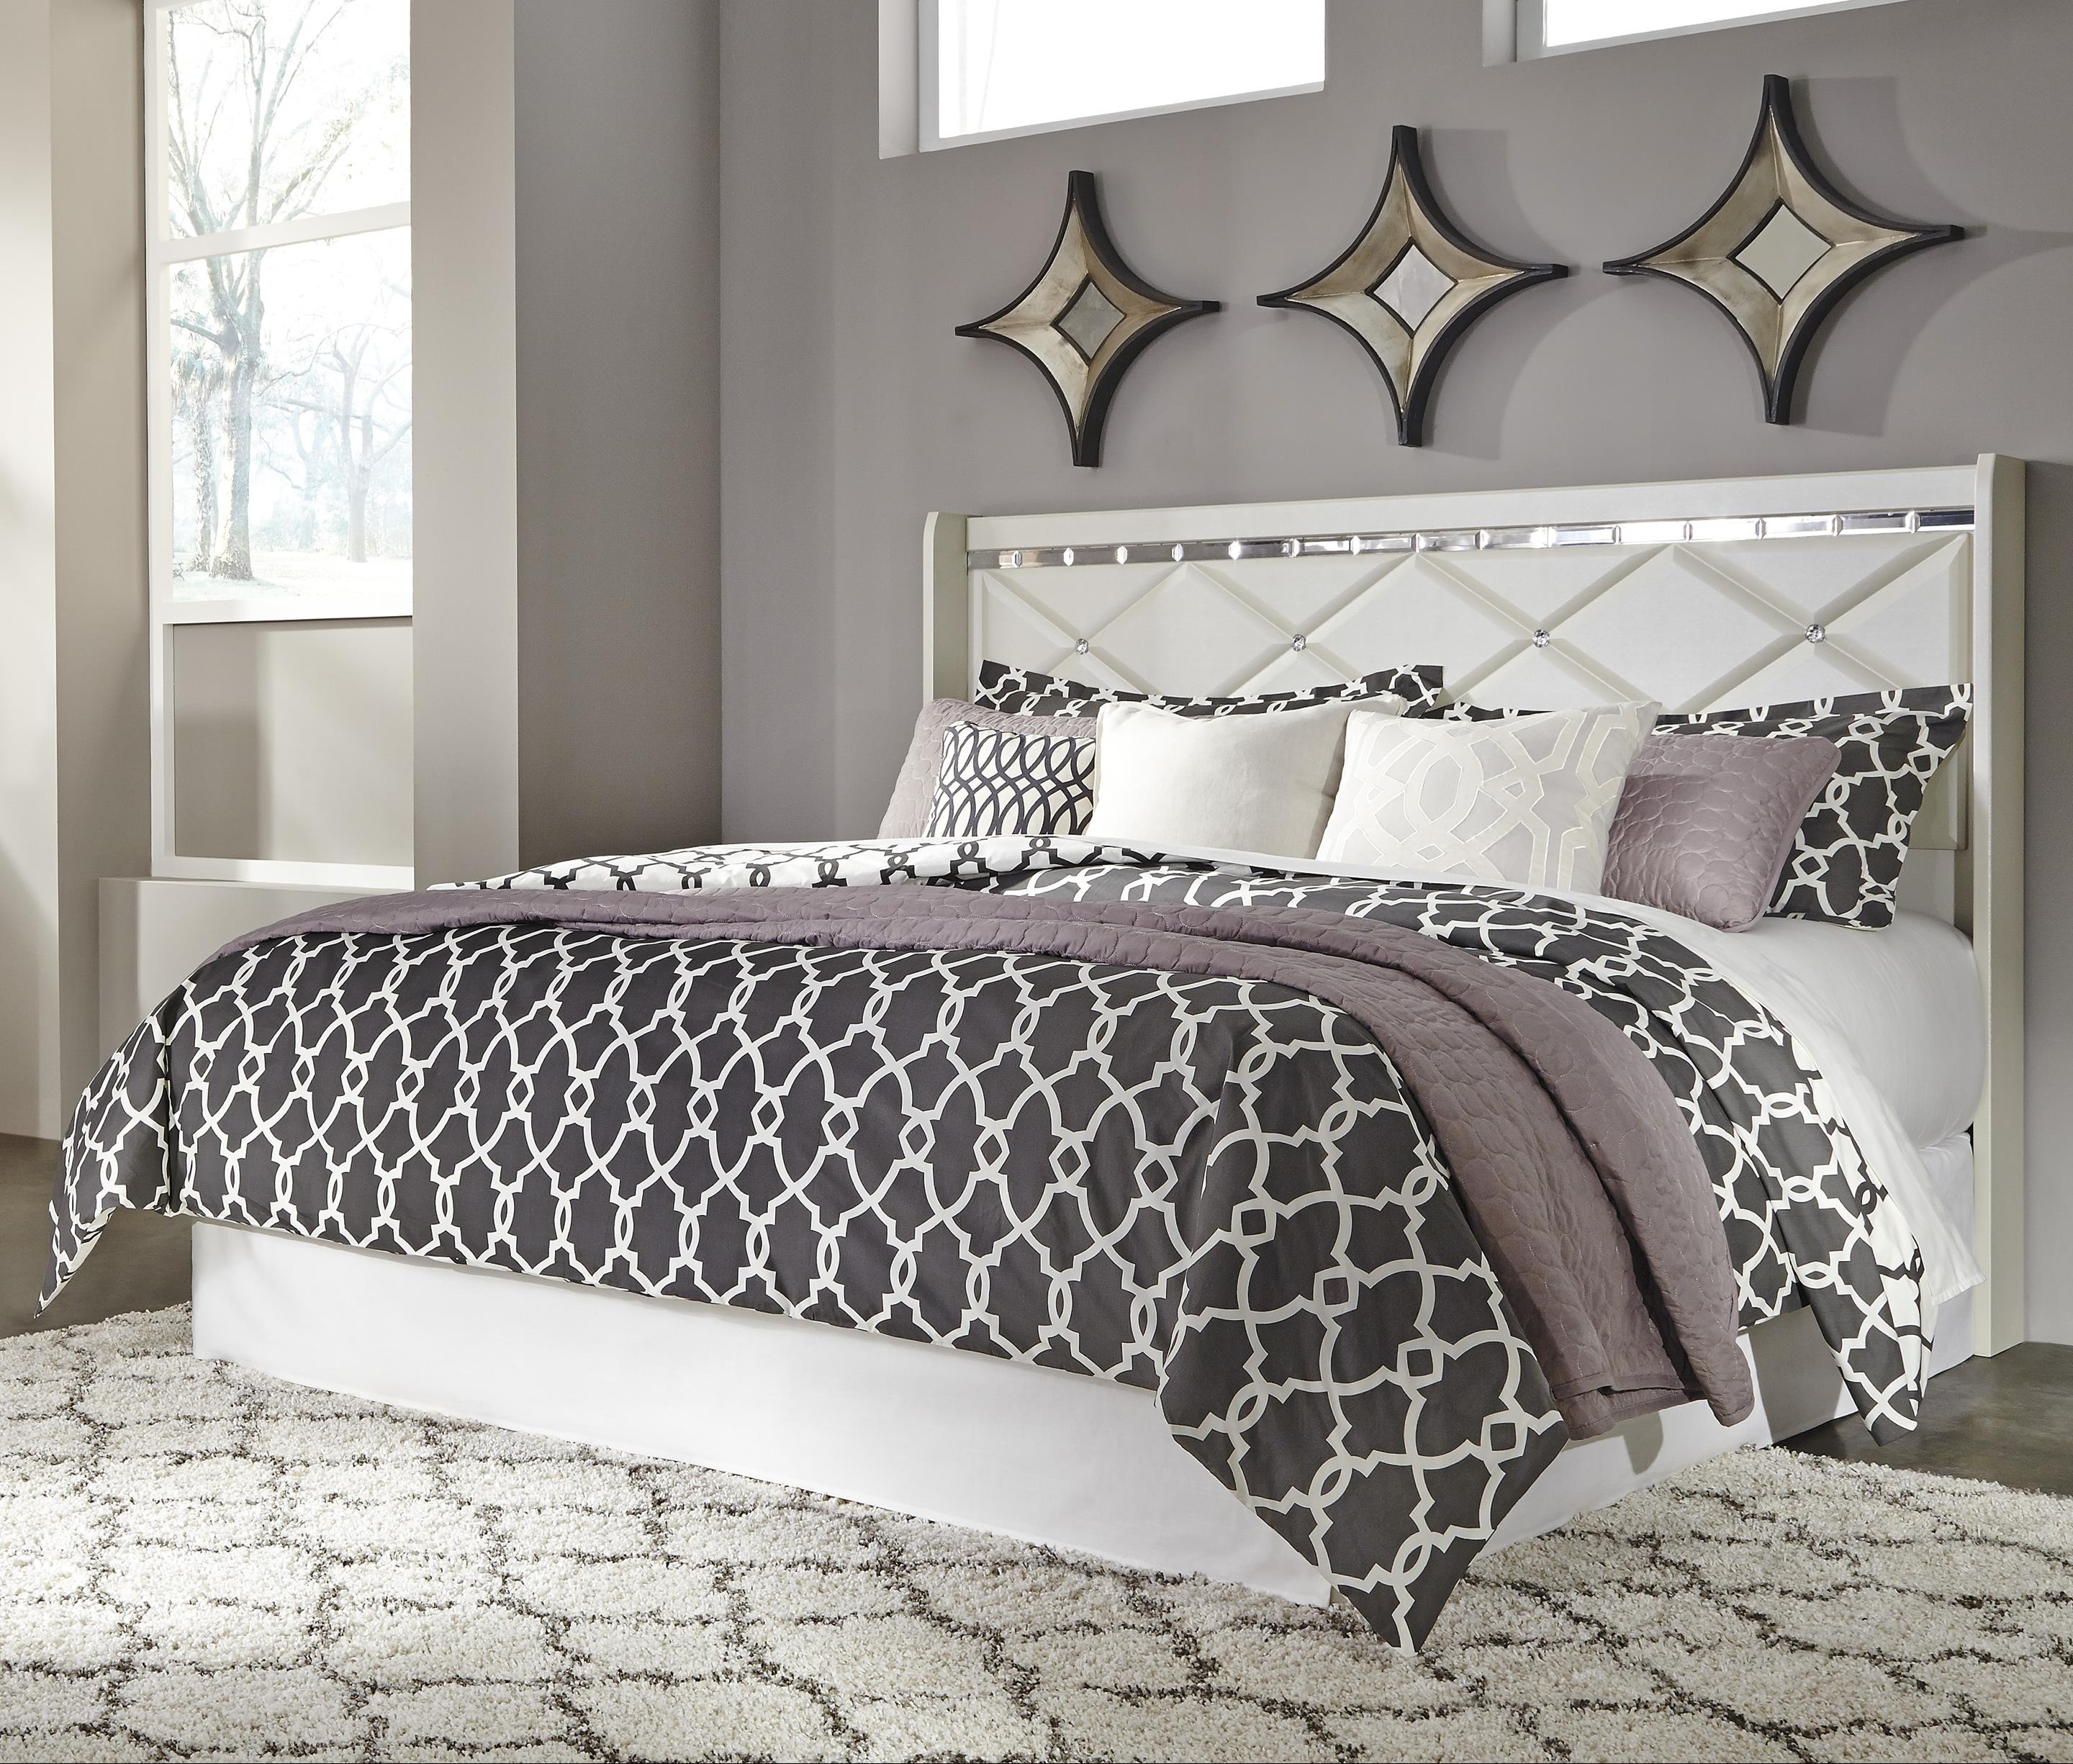 Signature Design by Ashley Dreamur King/California King Panel Headboard - Item Number: B351-58